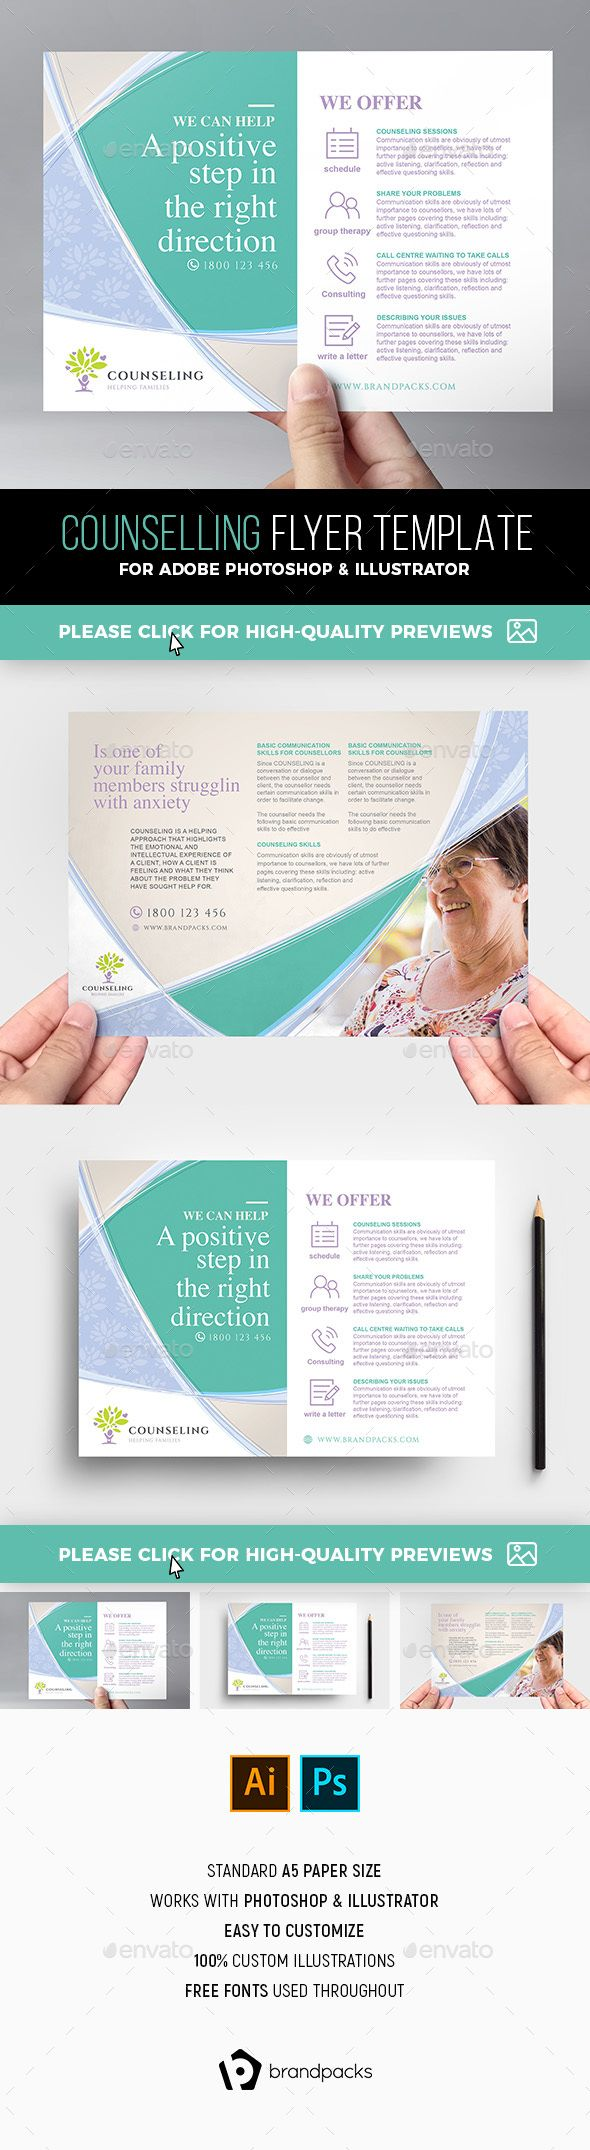 Counselling Service Flyer#Template - #Corporate Flyers | Flyer ...